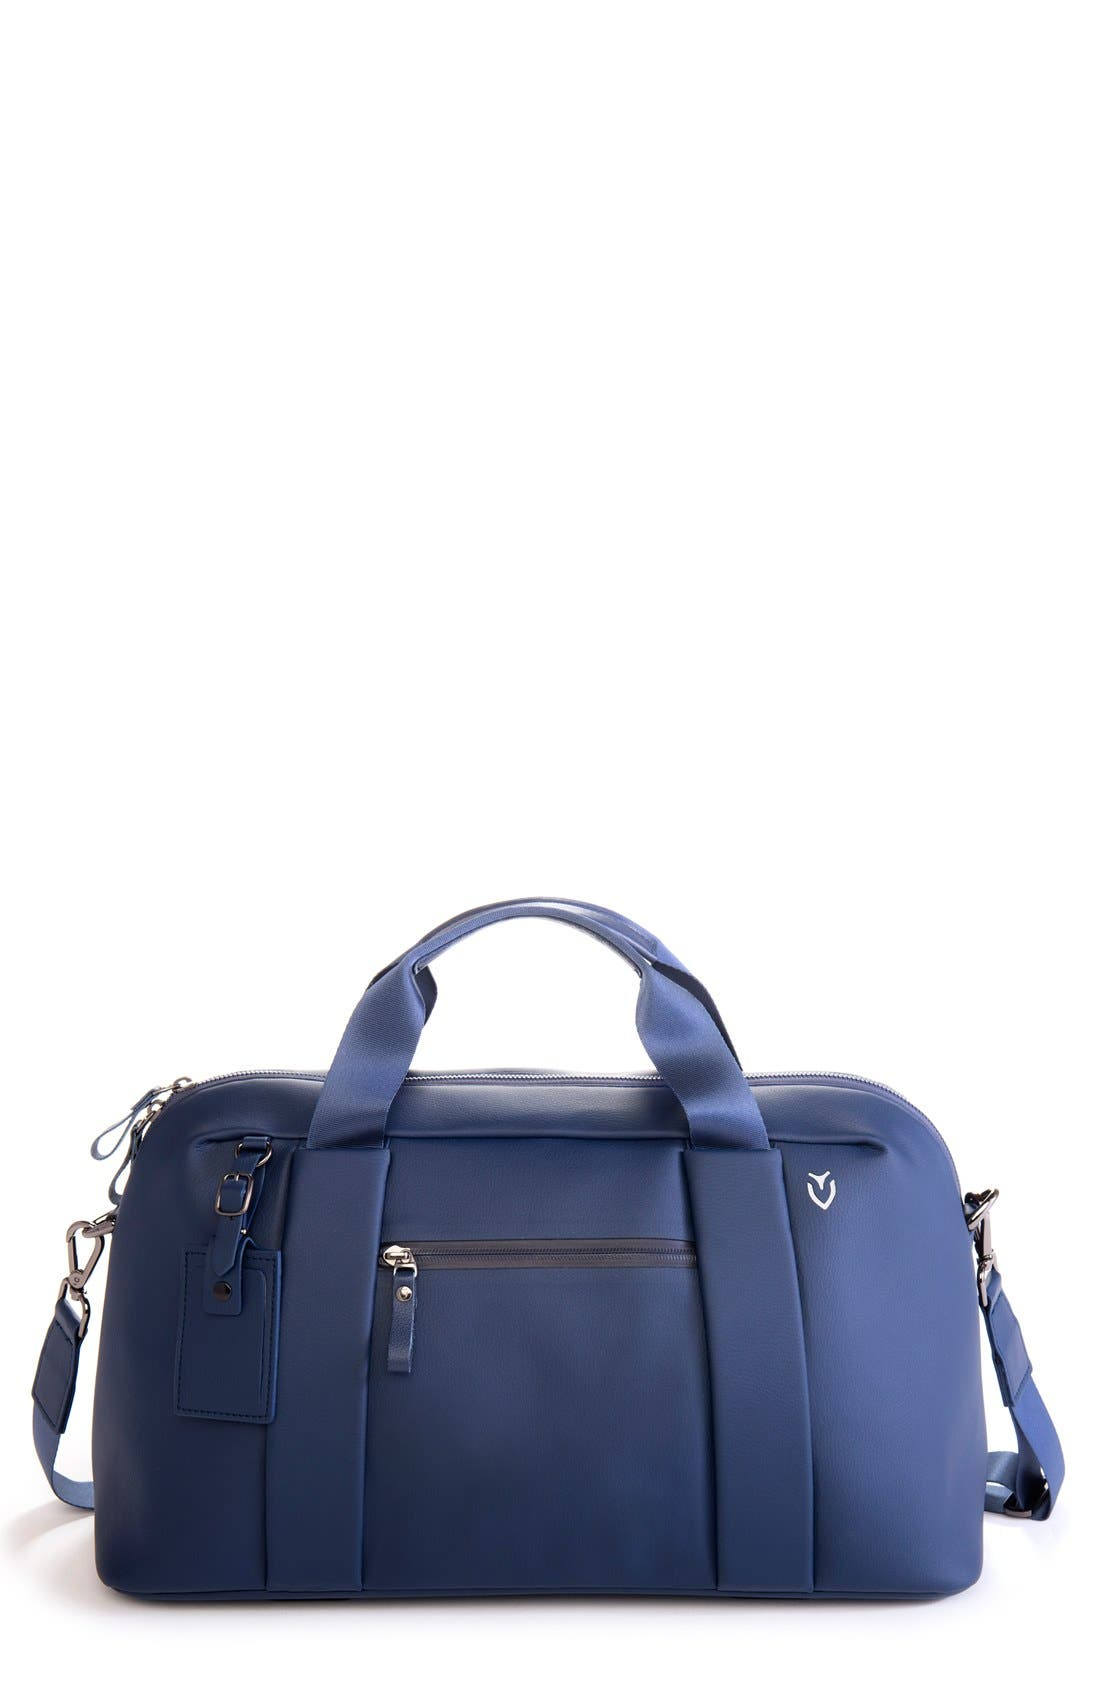 Vessel 'Signature' Medium Duffel Bag